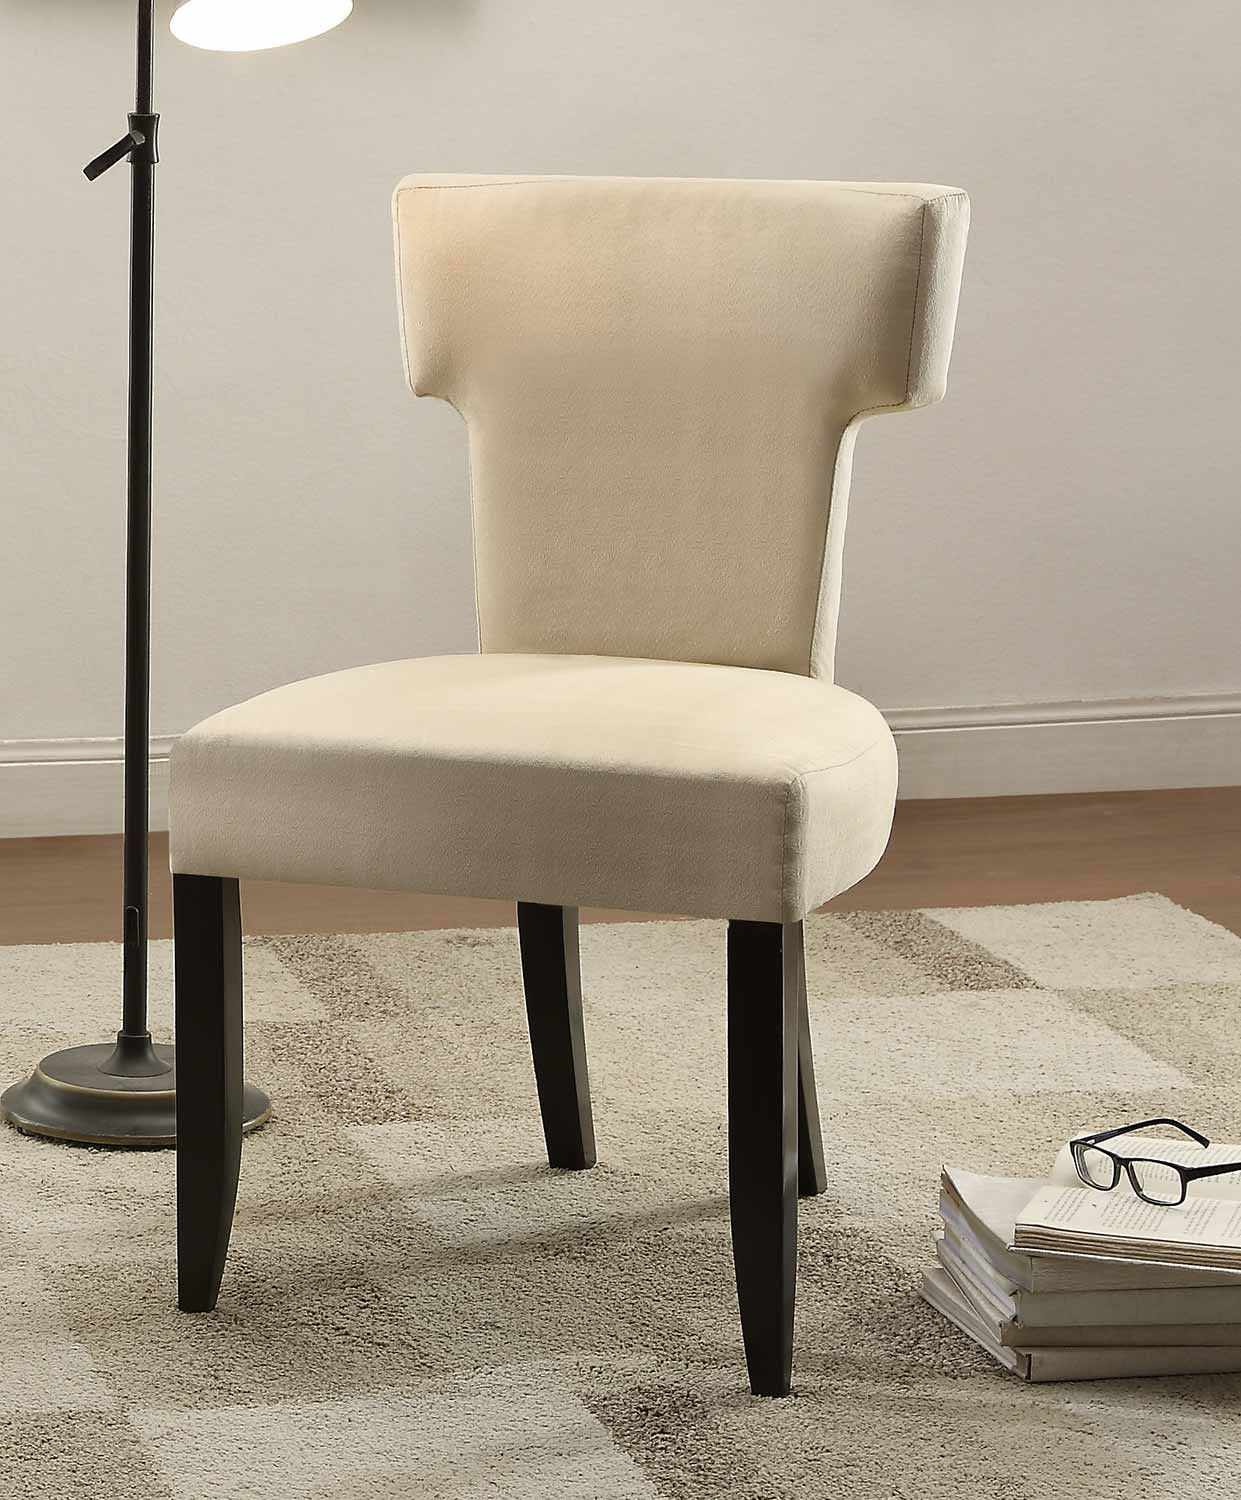 Homelegance Alta Accent Chair - Beige